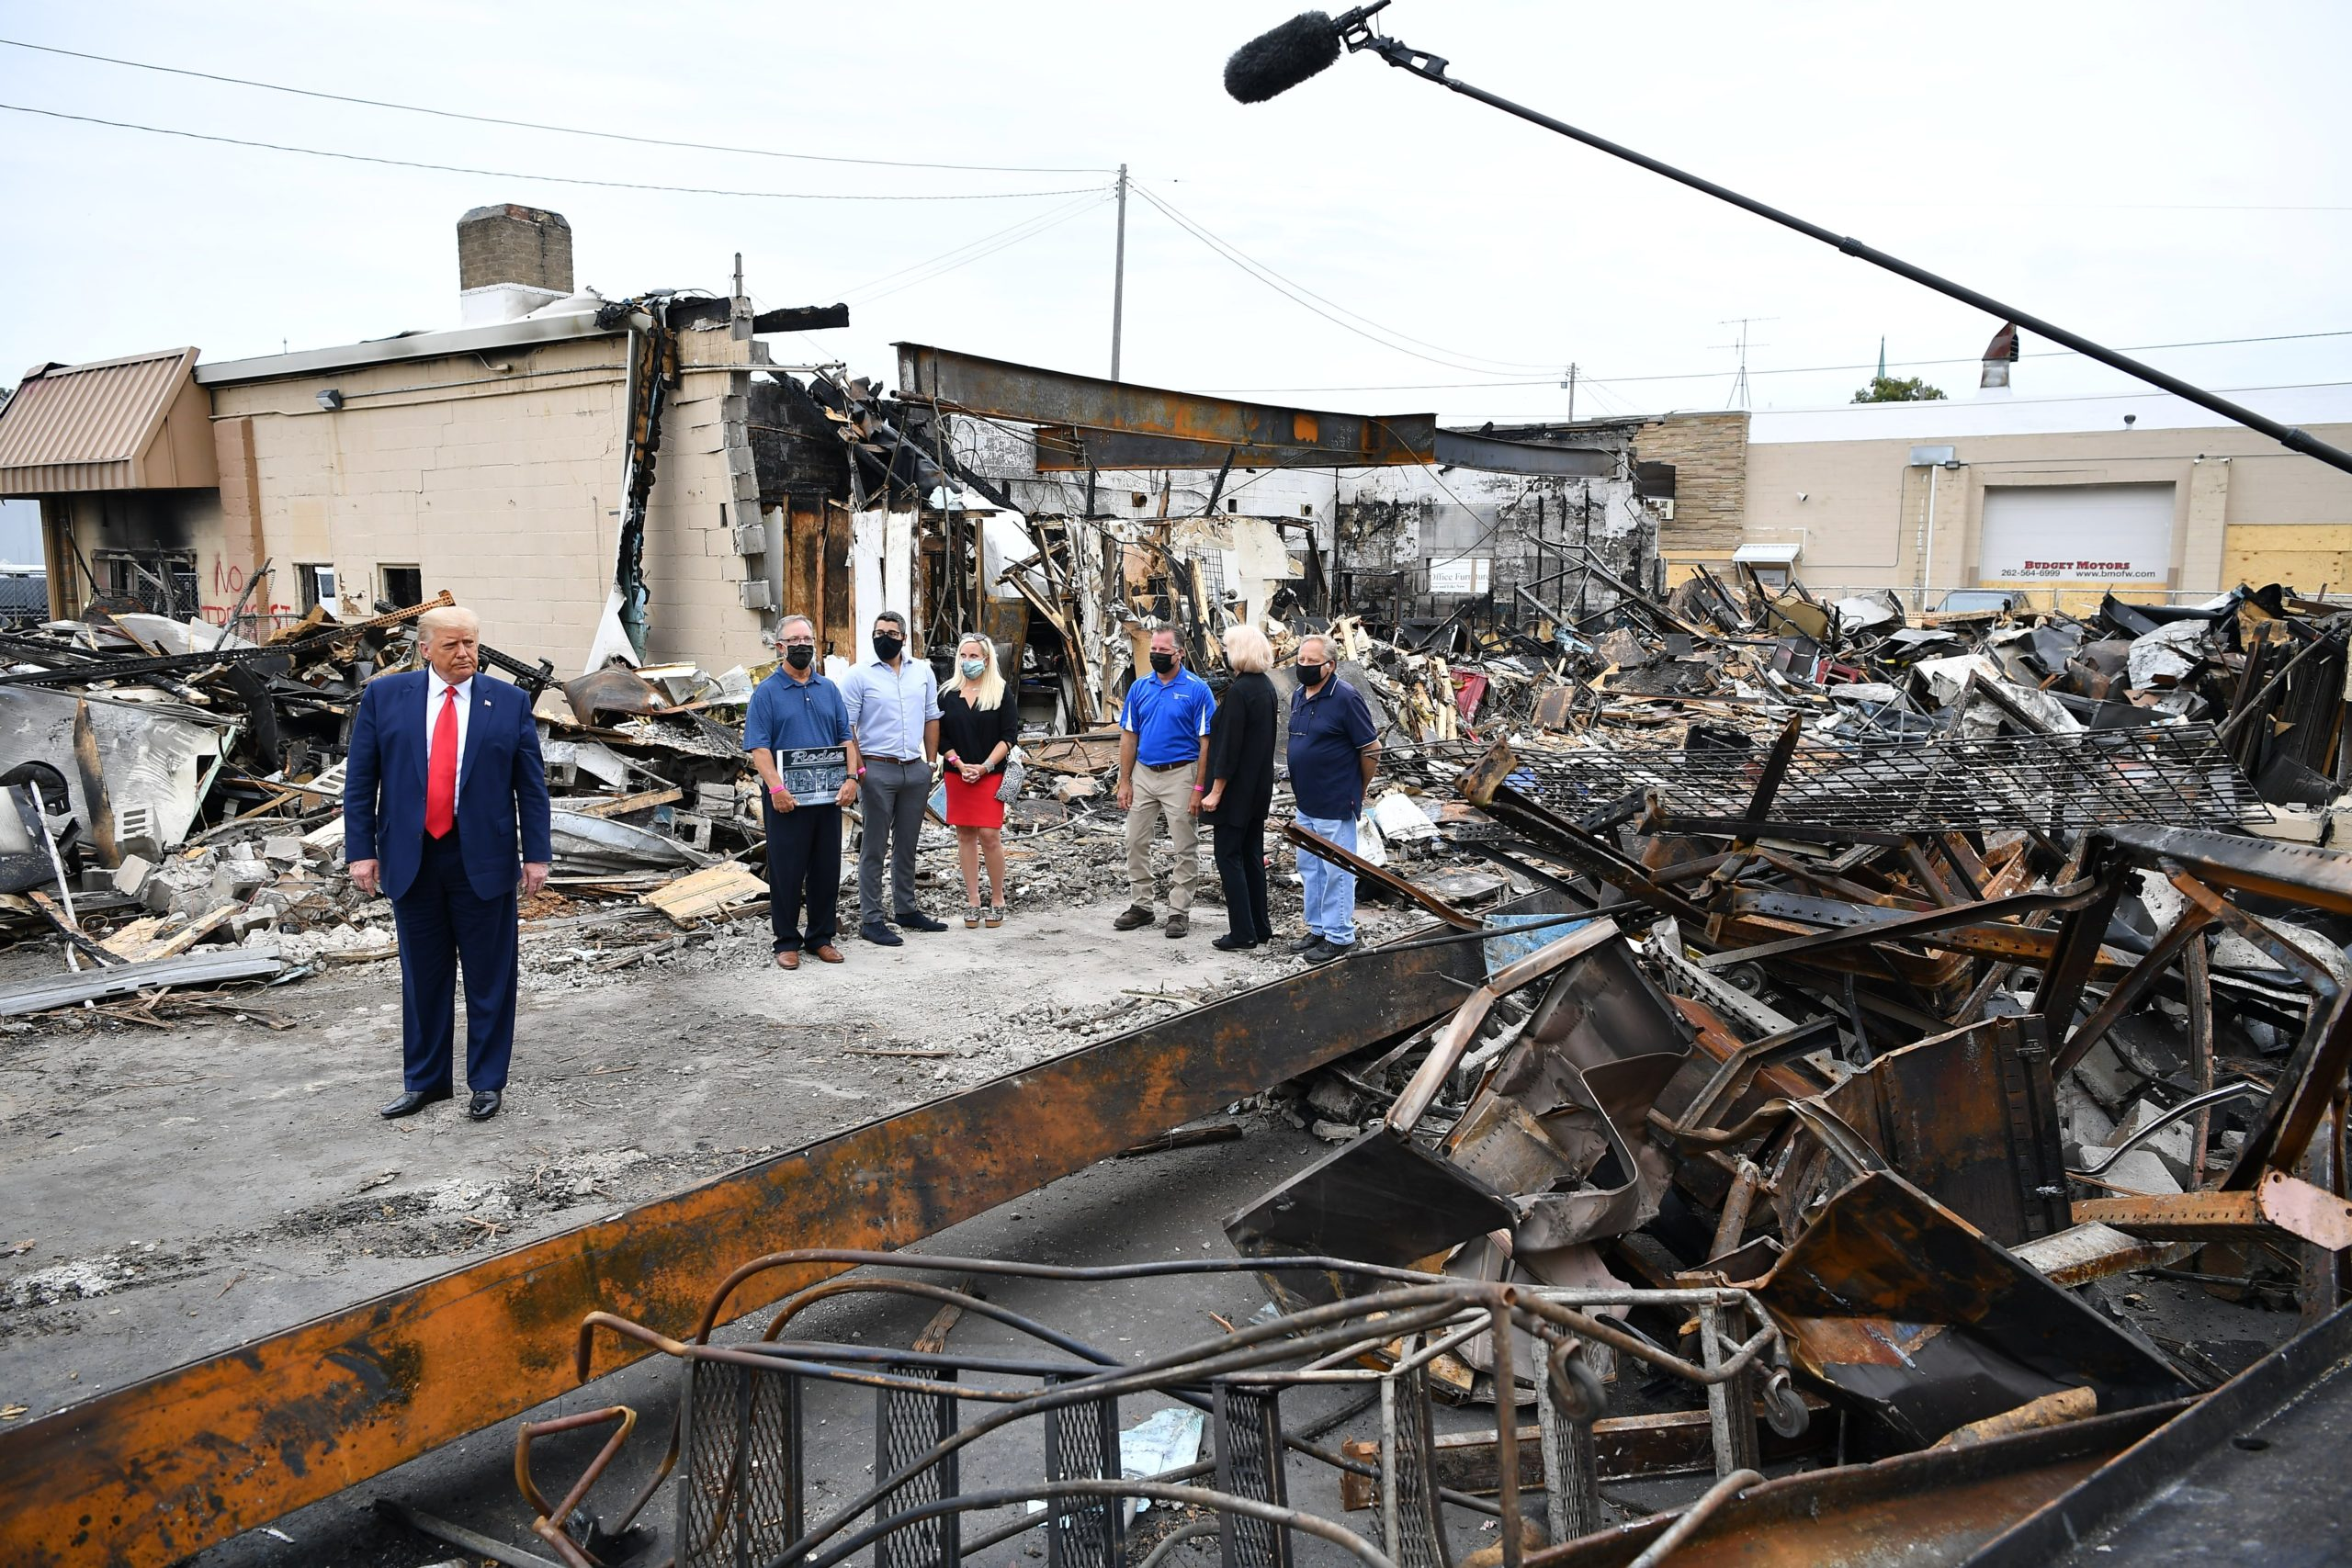 US President Donald Trump (L) tours an area affected by civil unrest in Kenosha, Wisconsin on September 1, 2020. - Trump visited Kenosha, the Wisconsin city at the center of a raging US debate over racism, despite pleas to stay away and claims he is dangerously fanning tensions as a reelection ploy. (MANDEL NGAN/AFP via Getty Images)